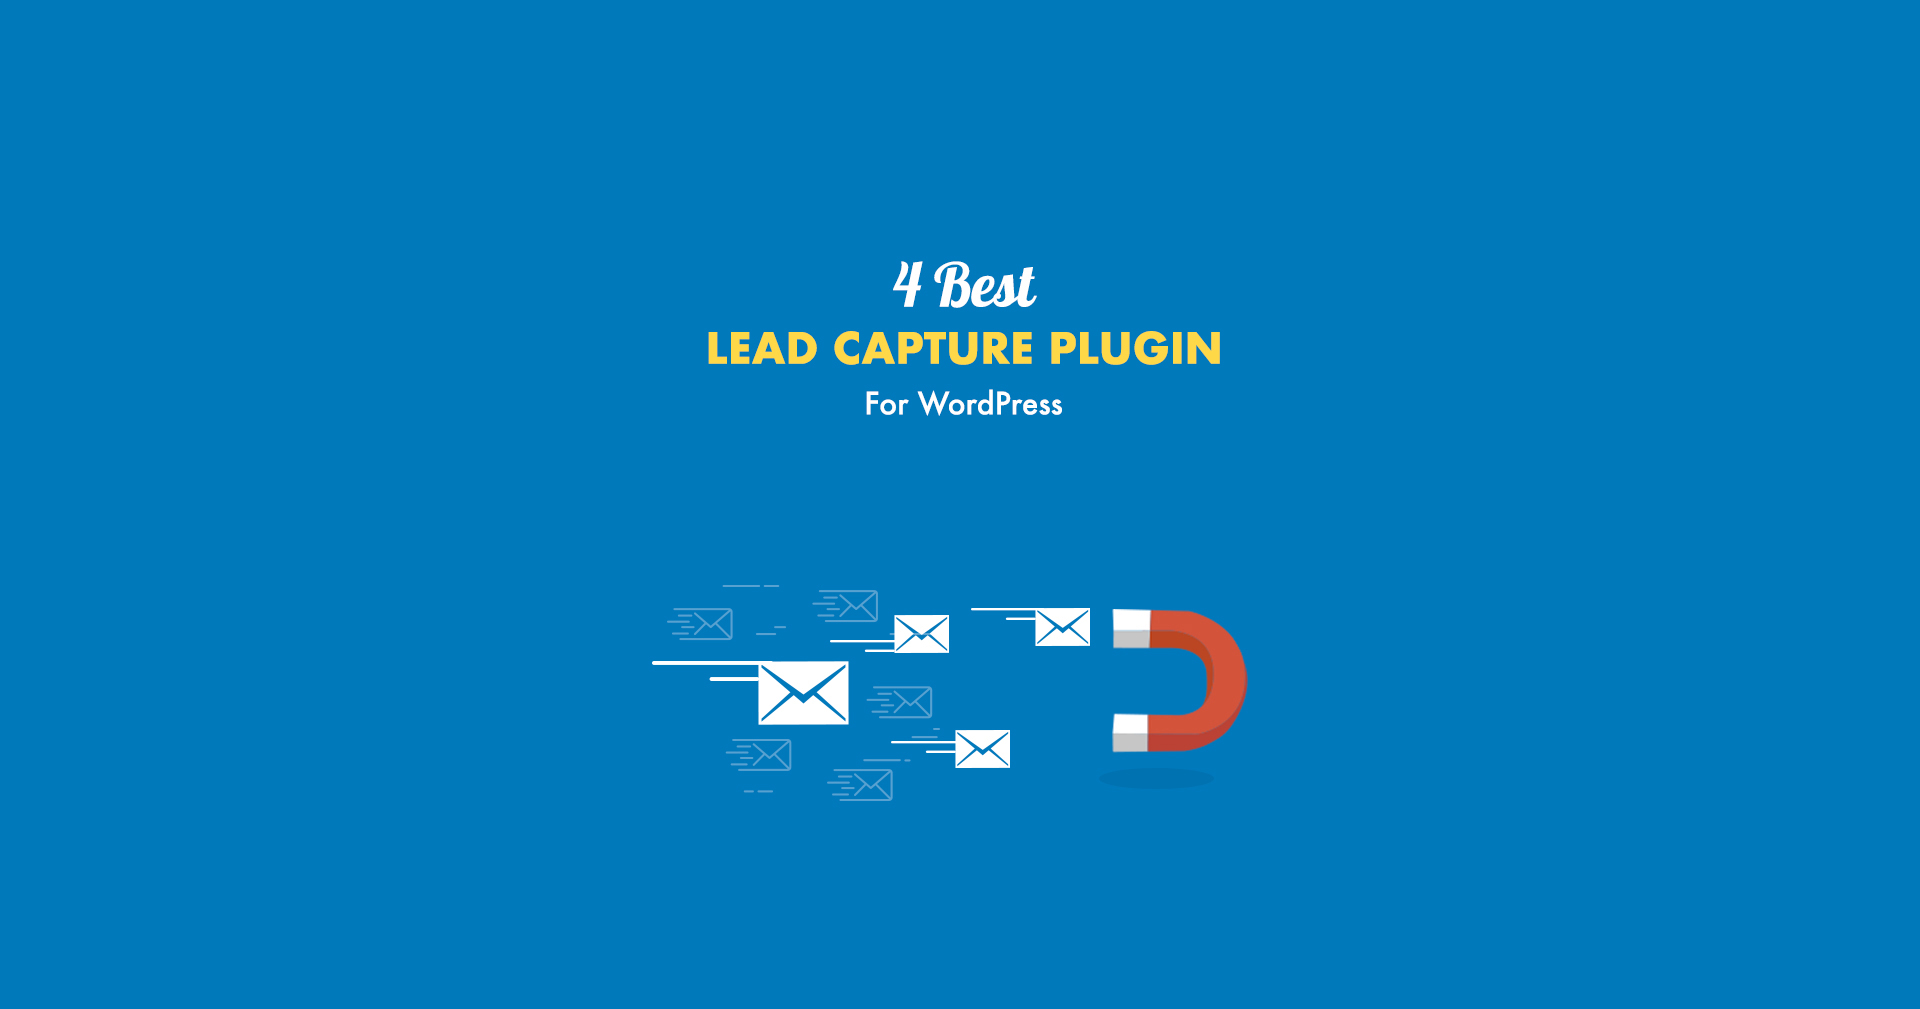 Best lead capture plugins